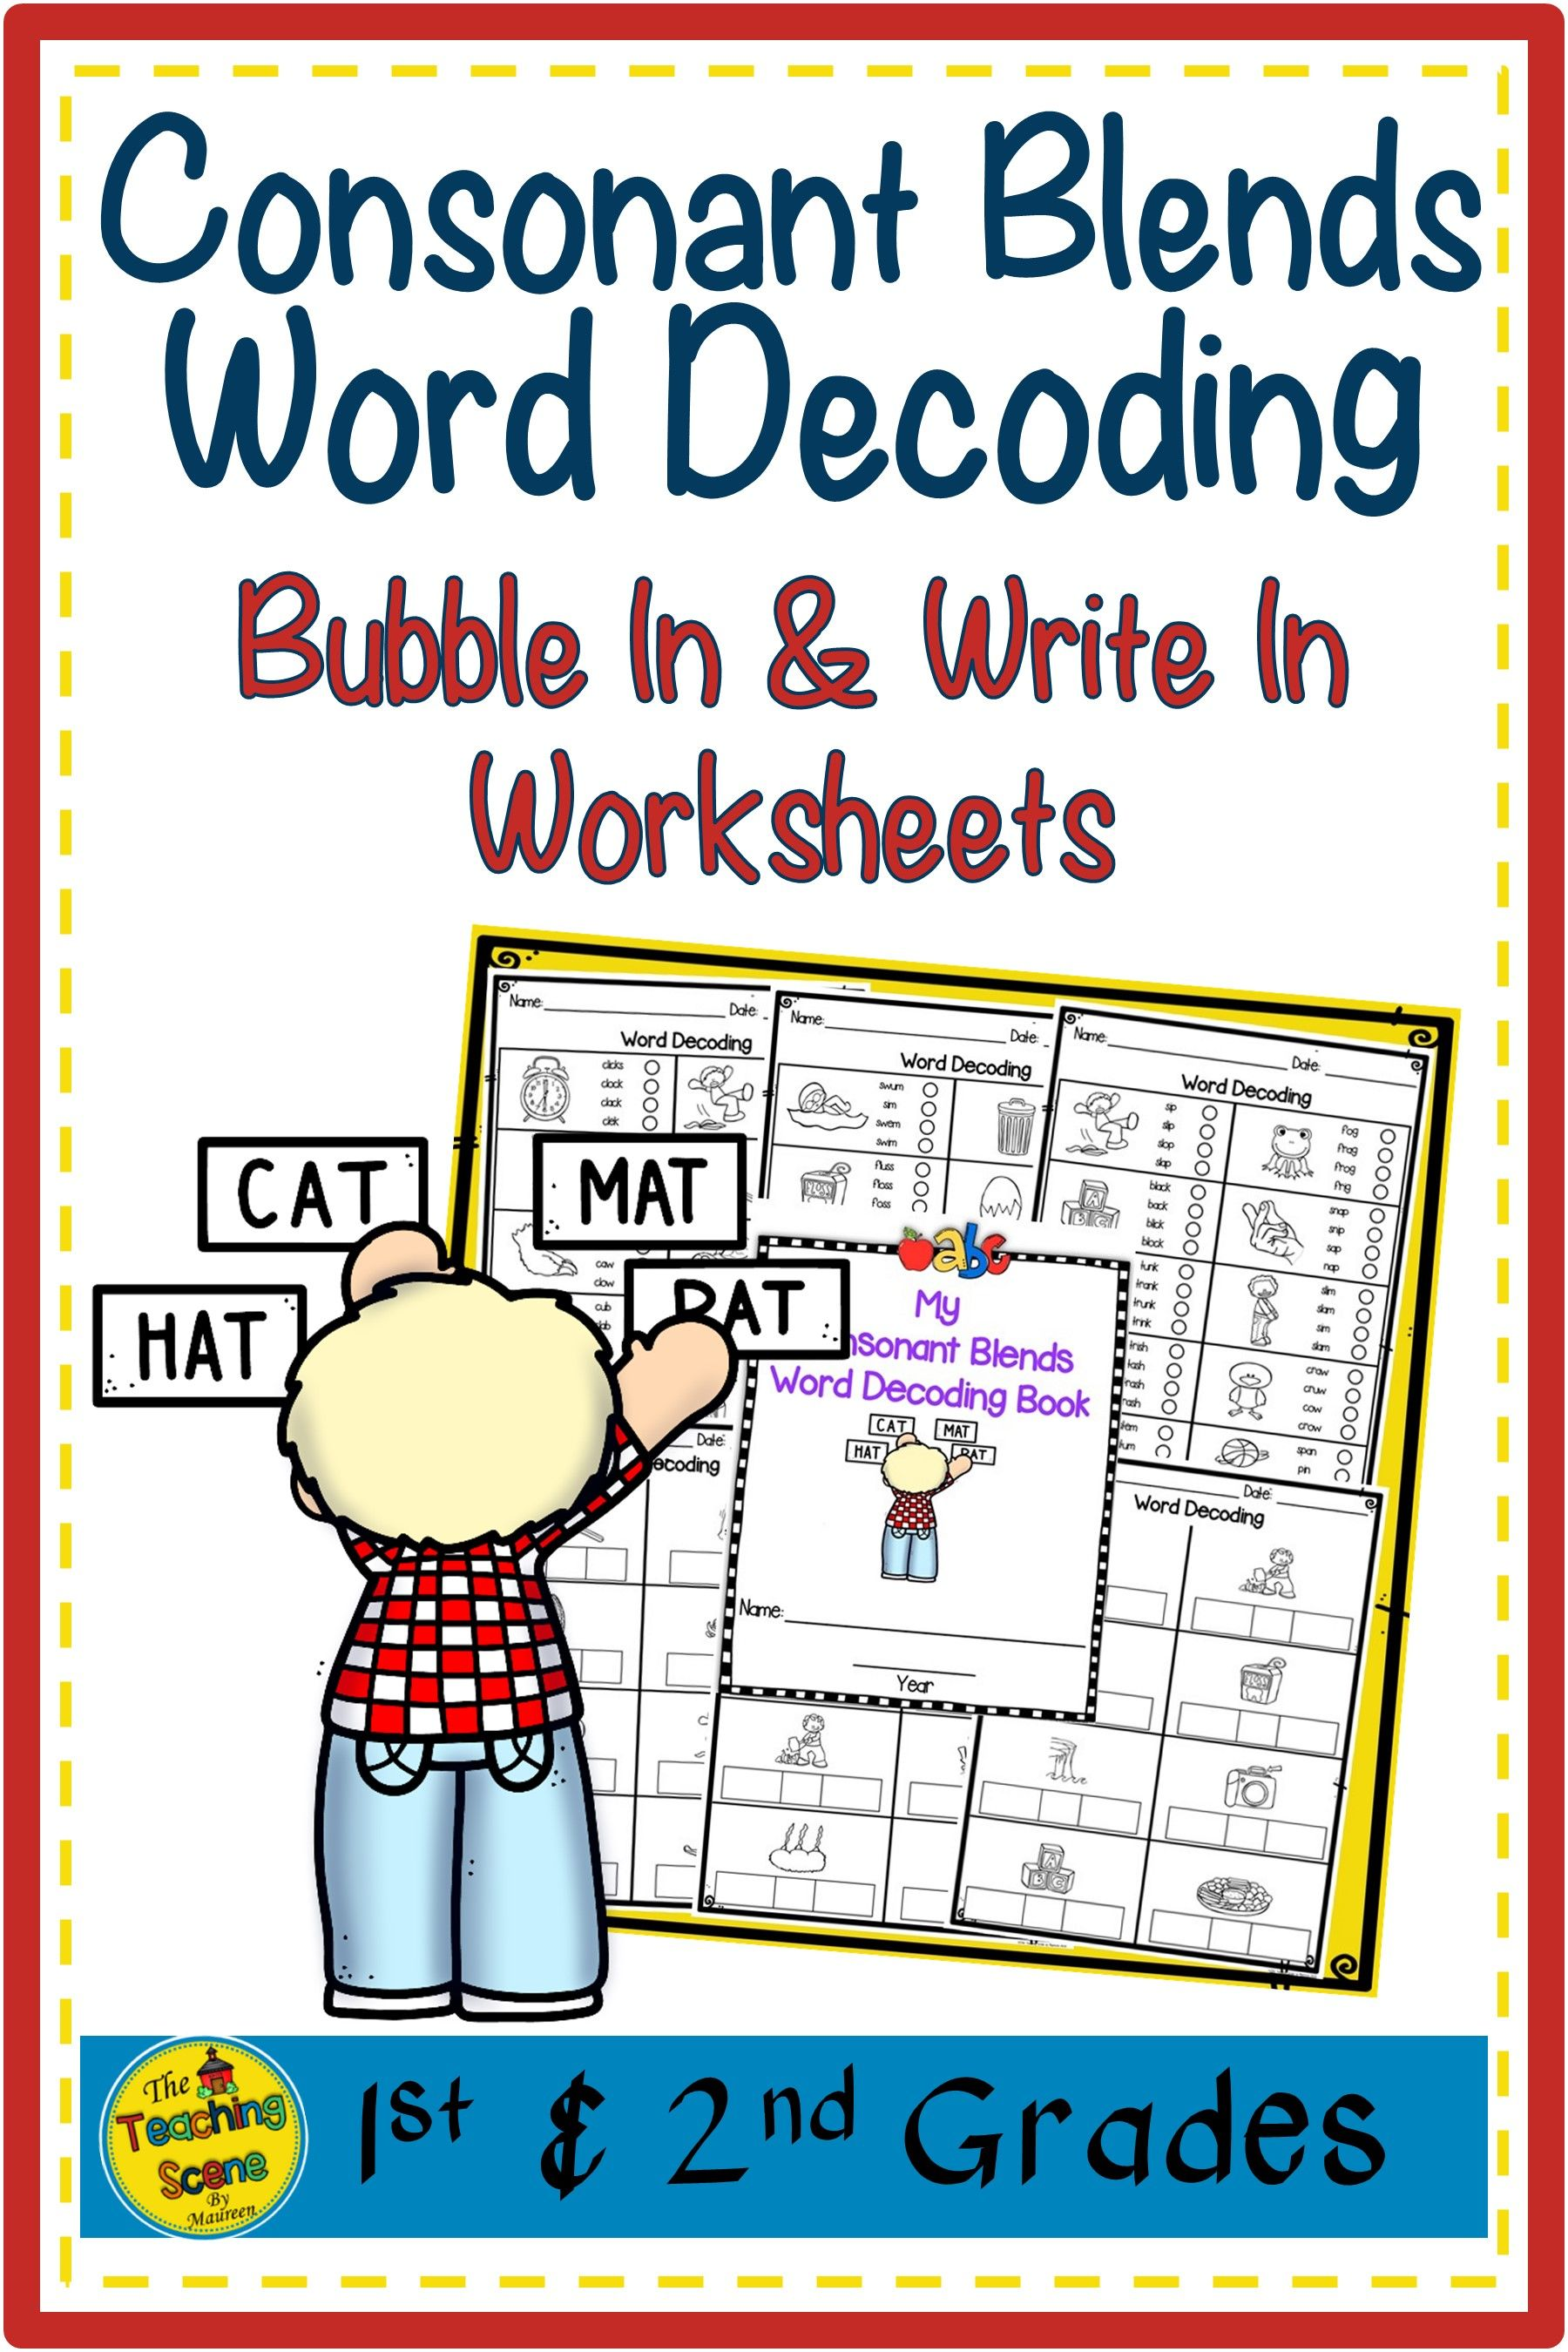 Consonant Blends Word Decoding Worksheets Amp Assessments In